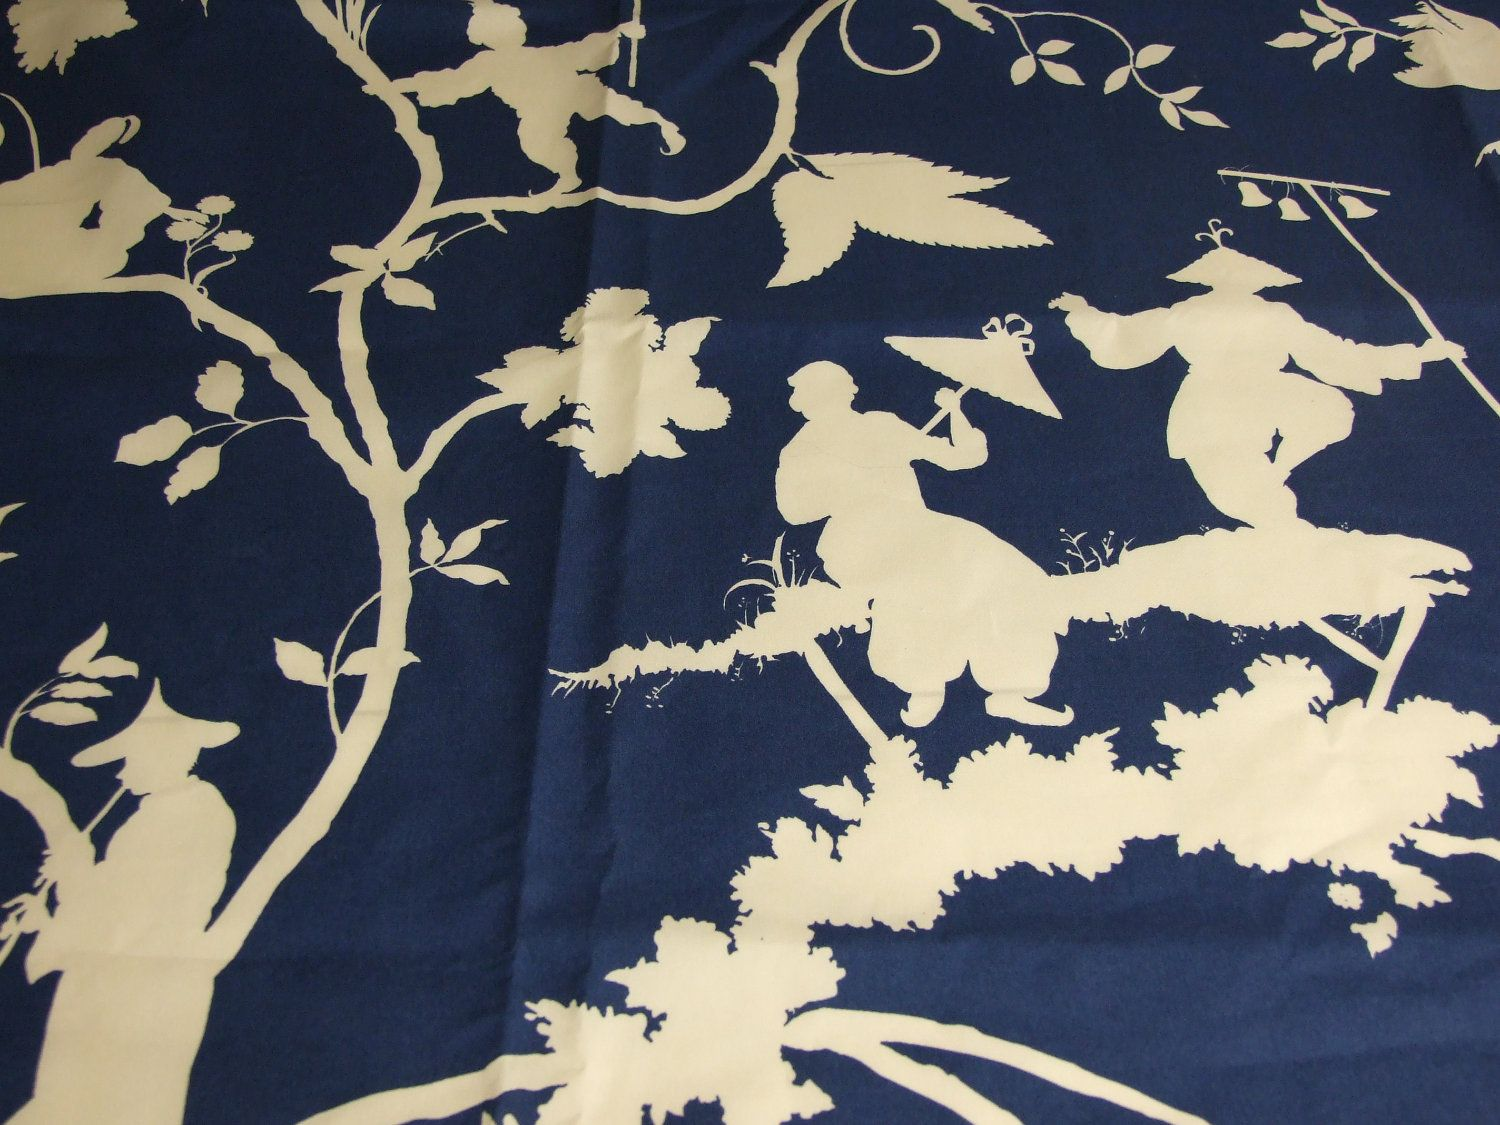 designer home decor fabric blue chinoiserie fabric toile 1 yard - Home Decor Fabrics By The Yard